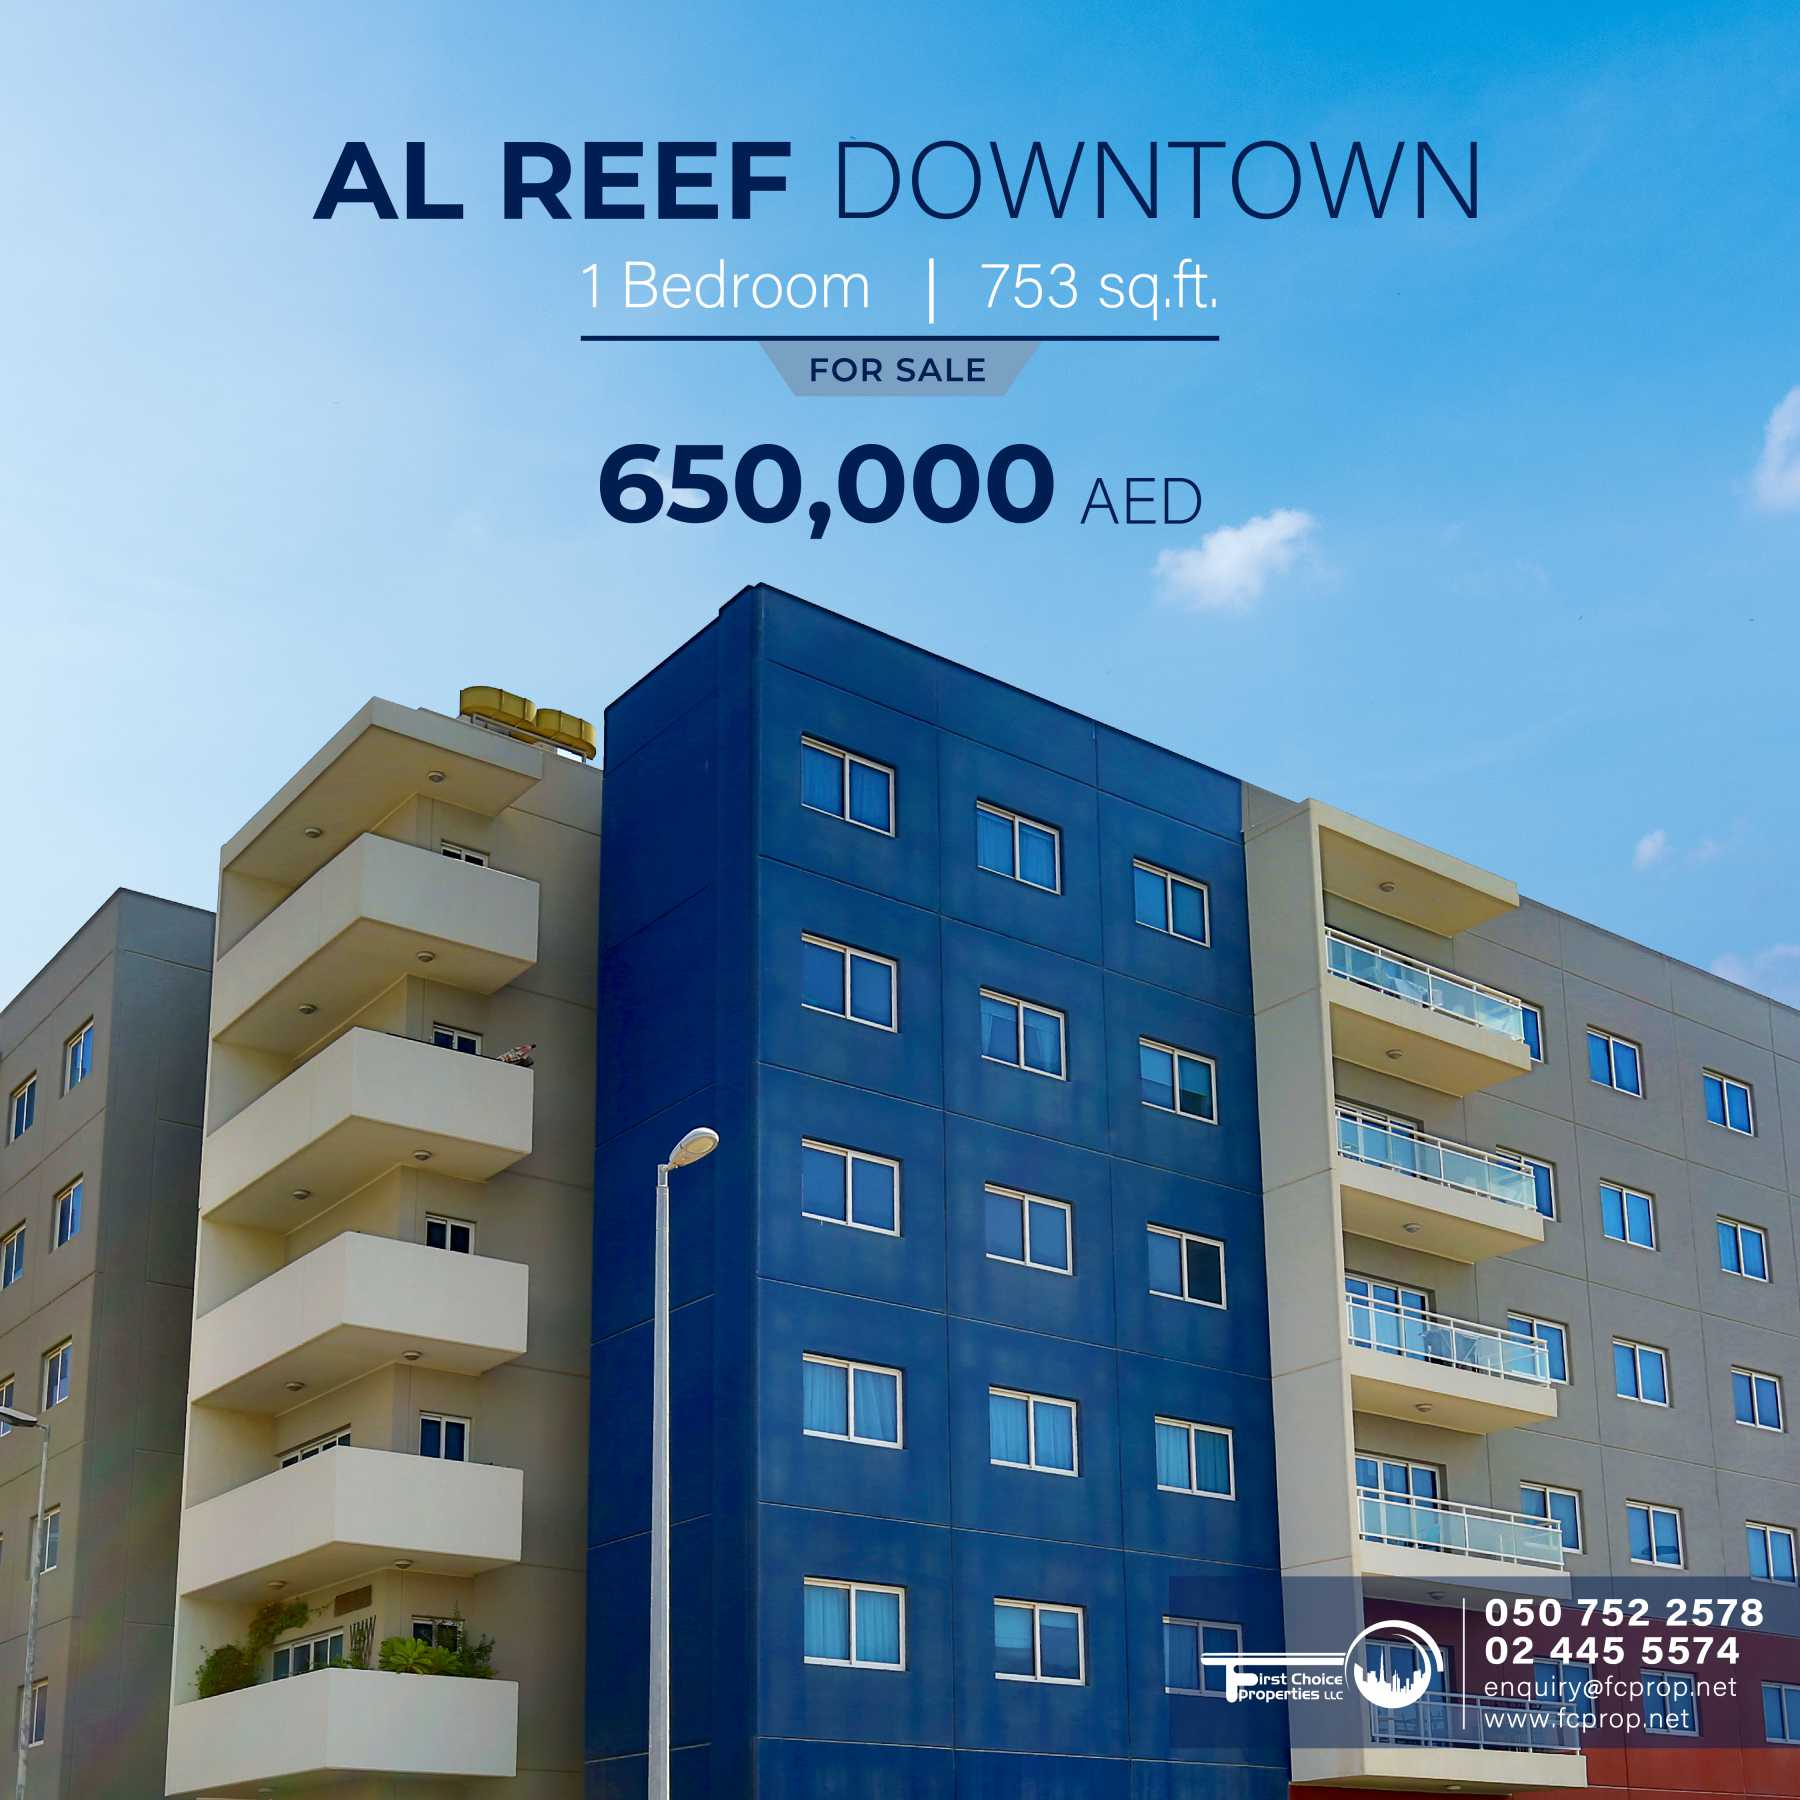 Al Reef Downtown Ad_Sale.jpg